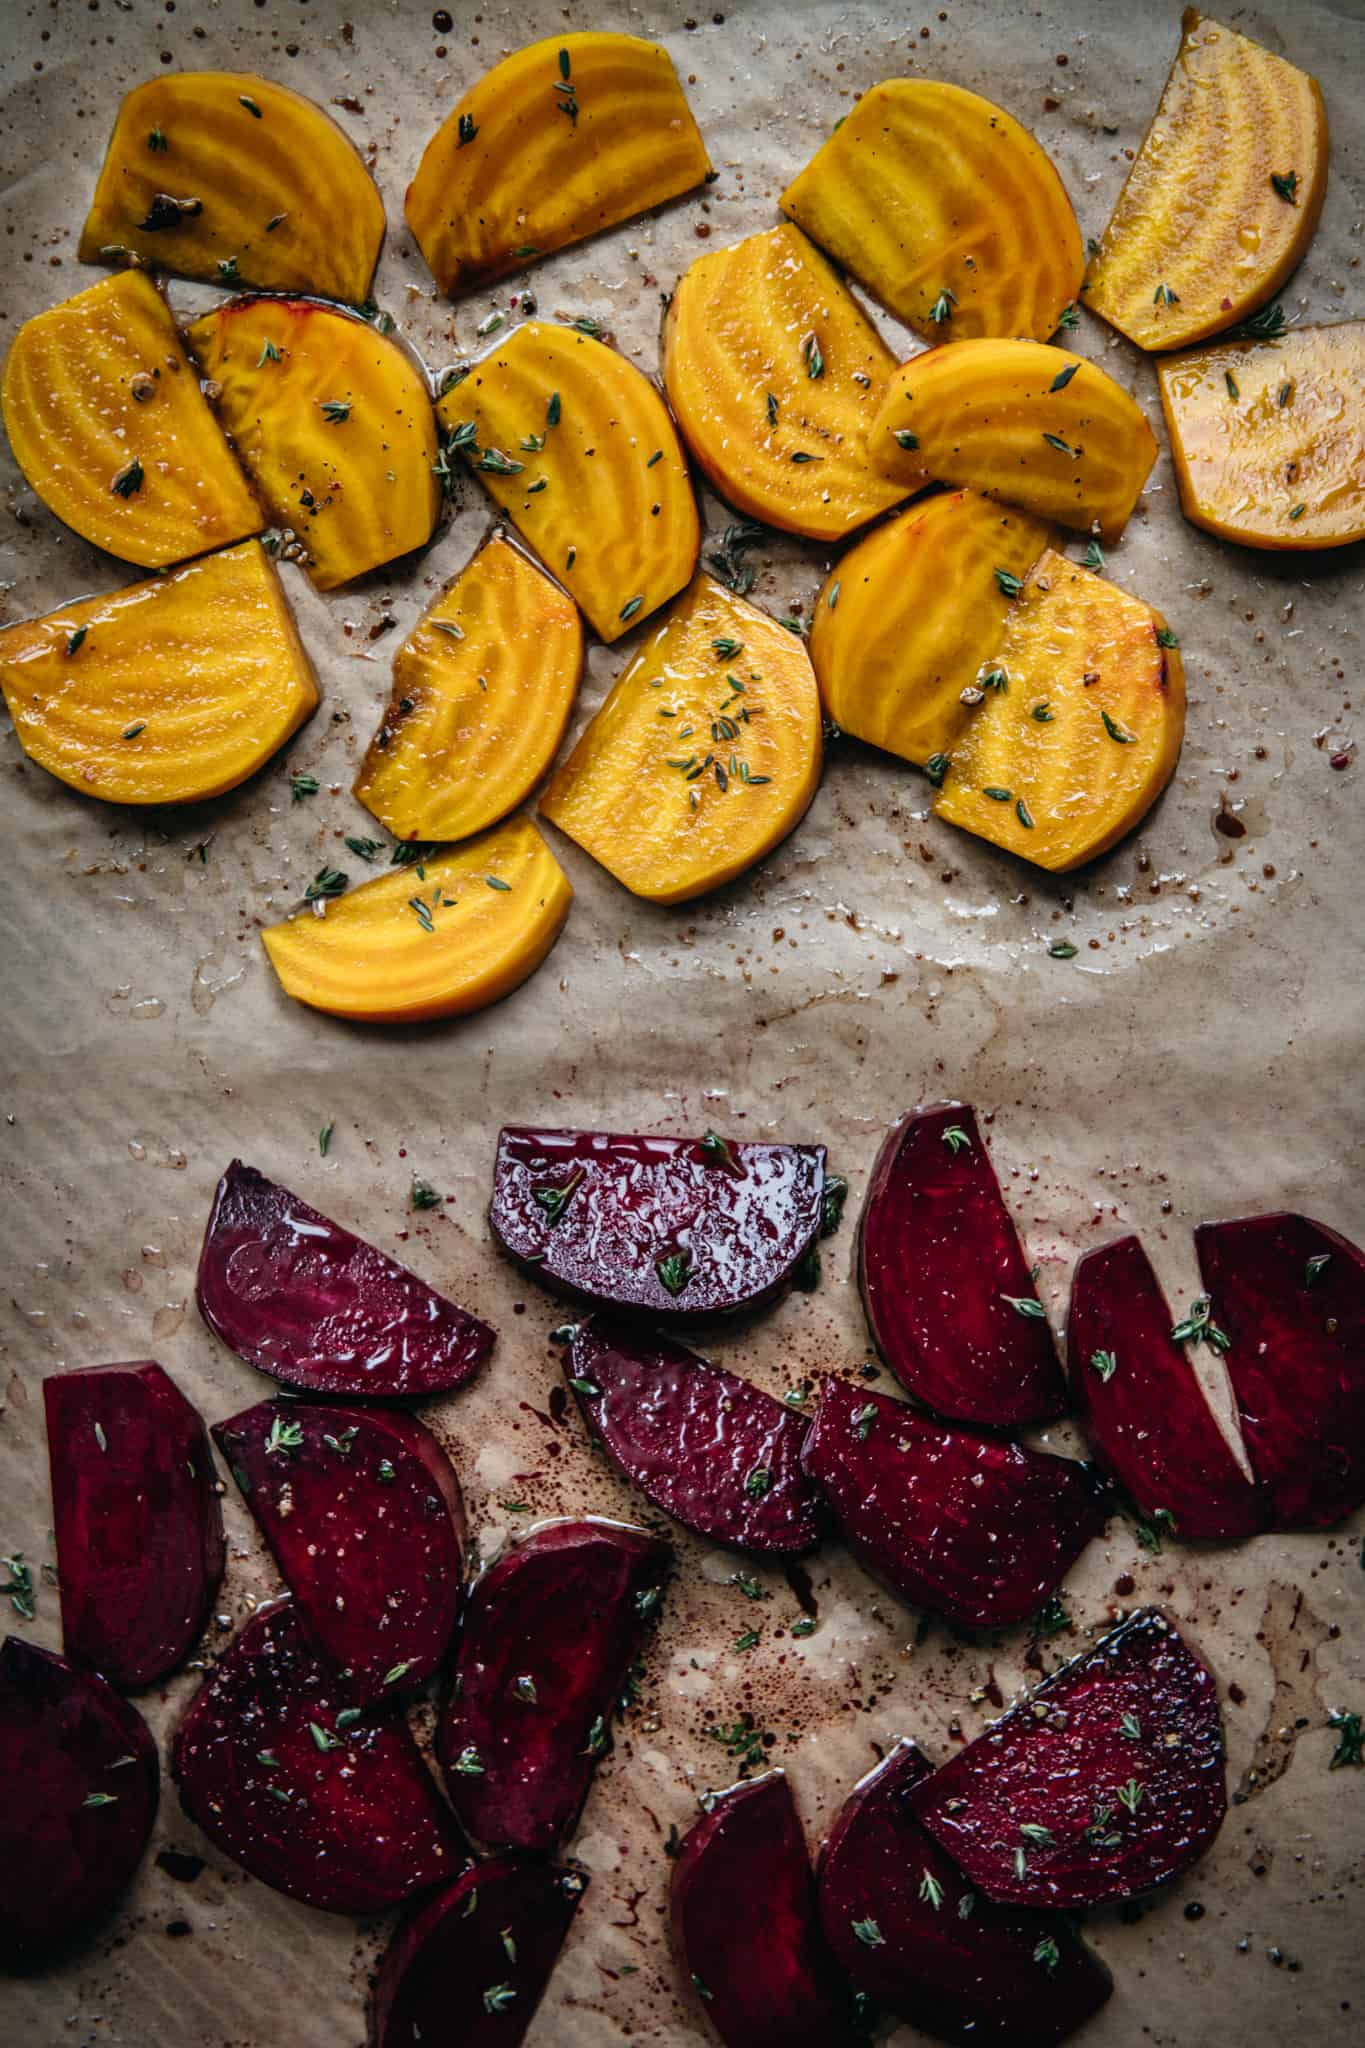 overhead view of golden and regular red beets on parchment paper